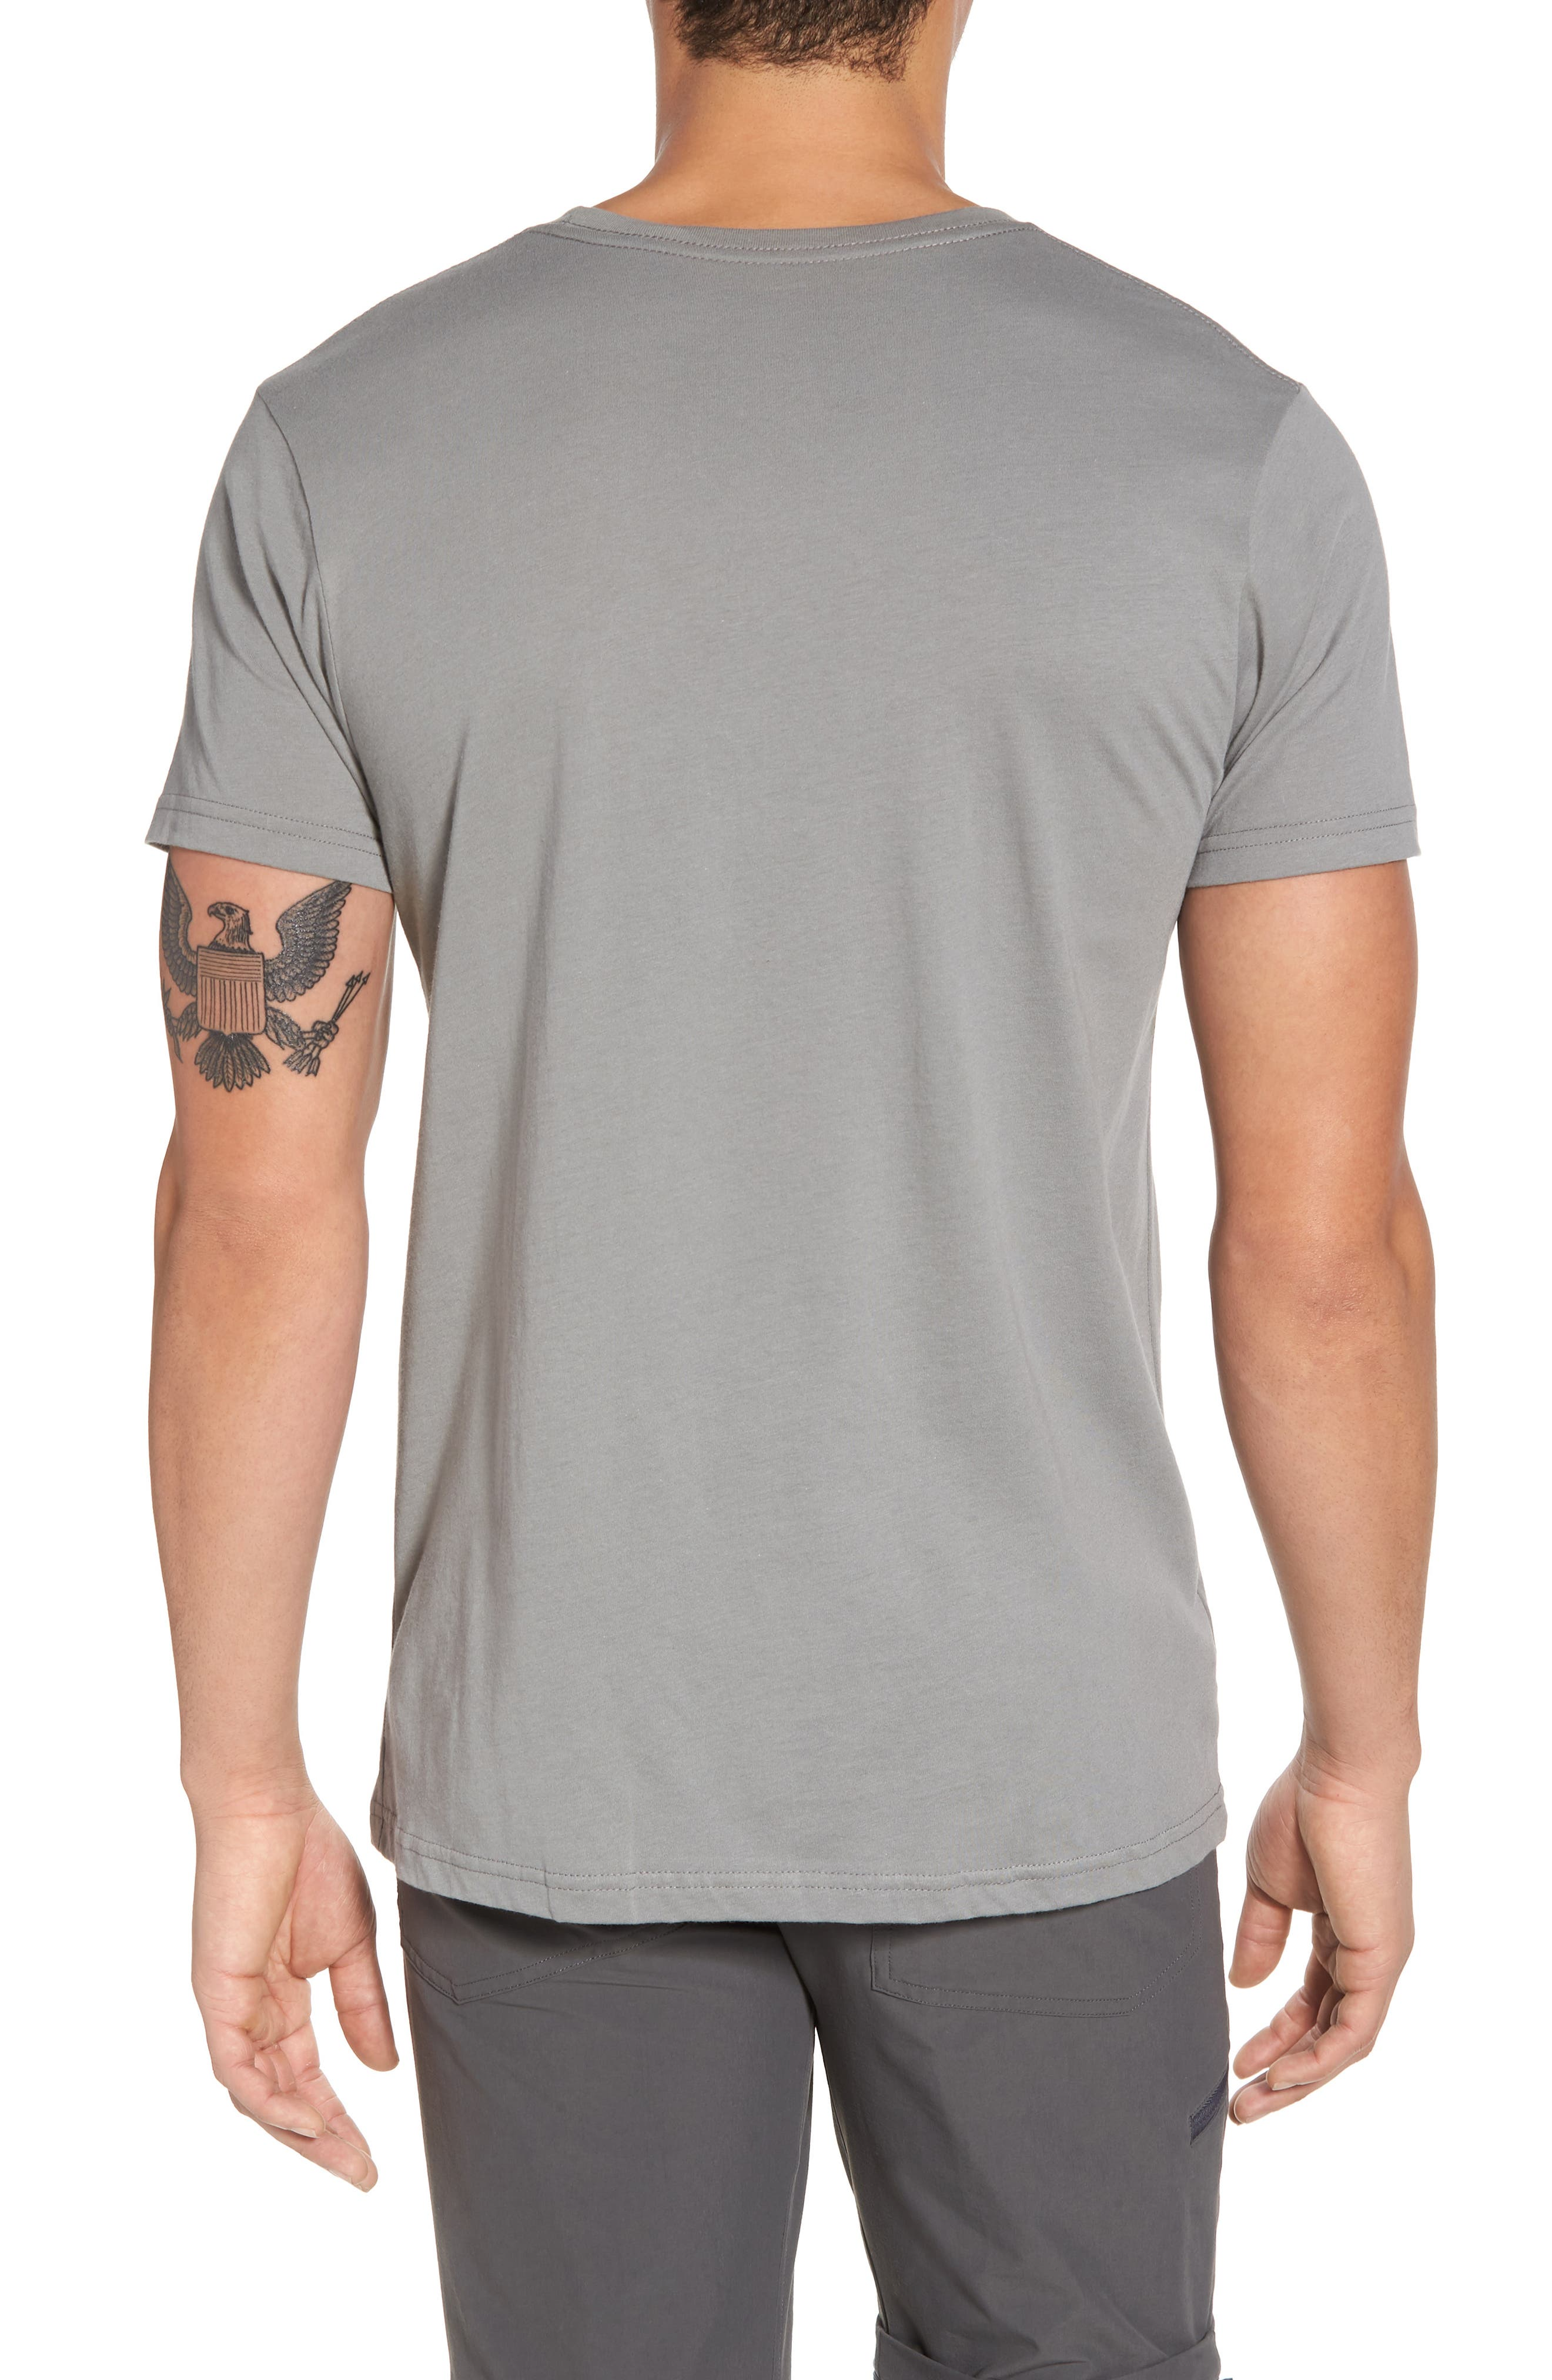 Up & Out Graphic Organic Cotton T-Shirt,                             Alternate thumbnail 2, color,                             FEATHER GREY